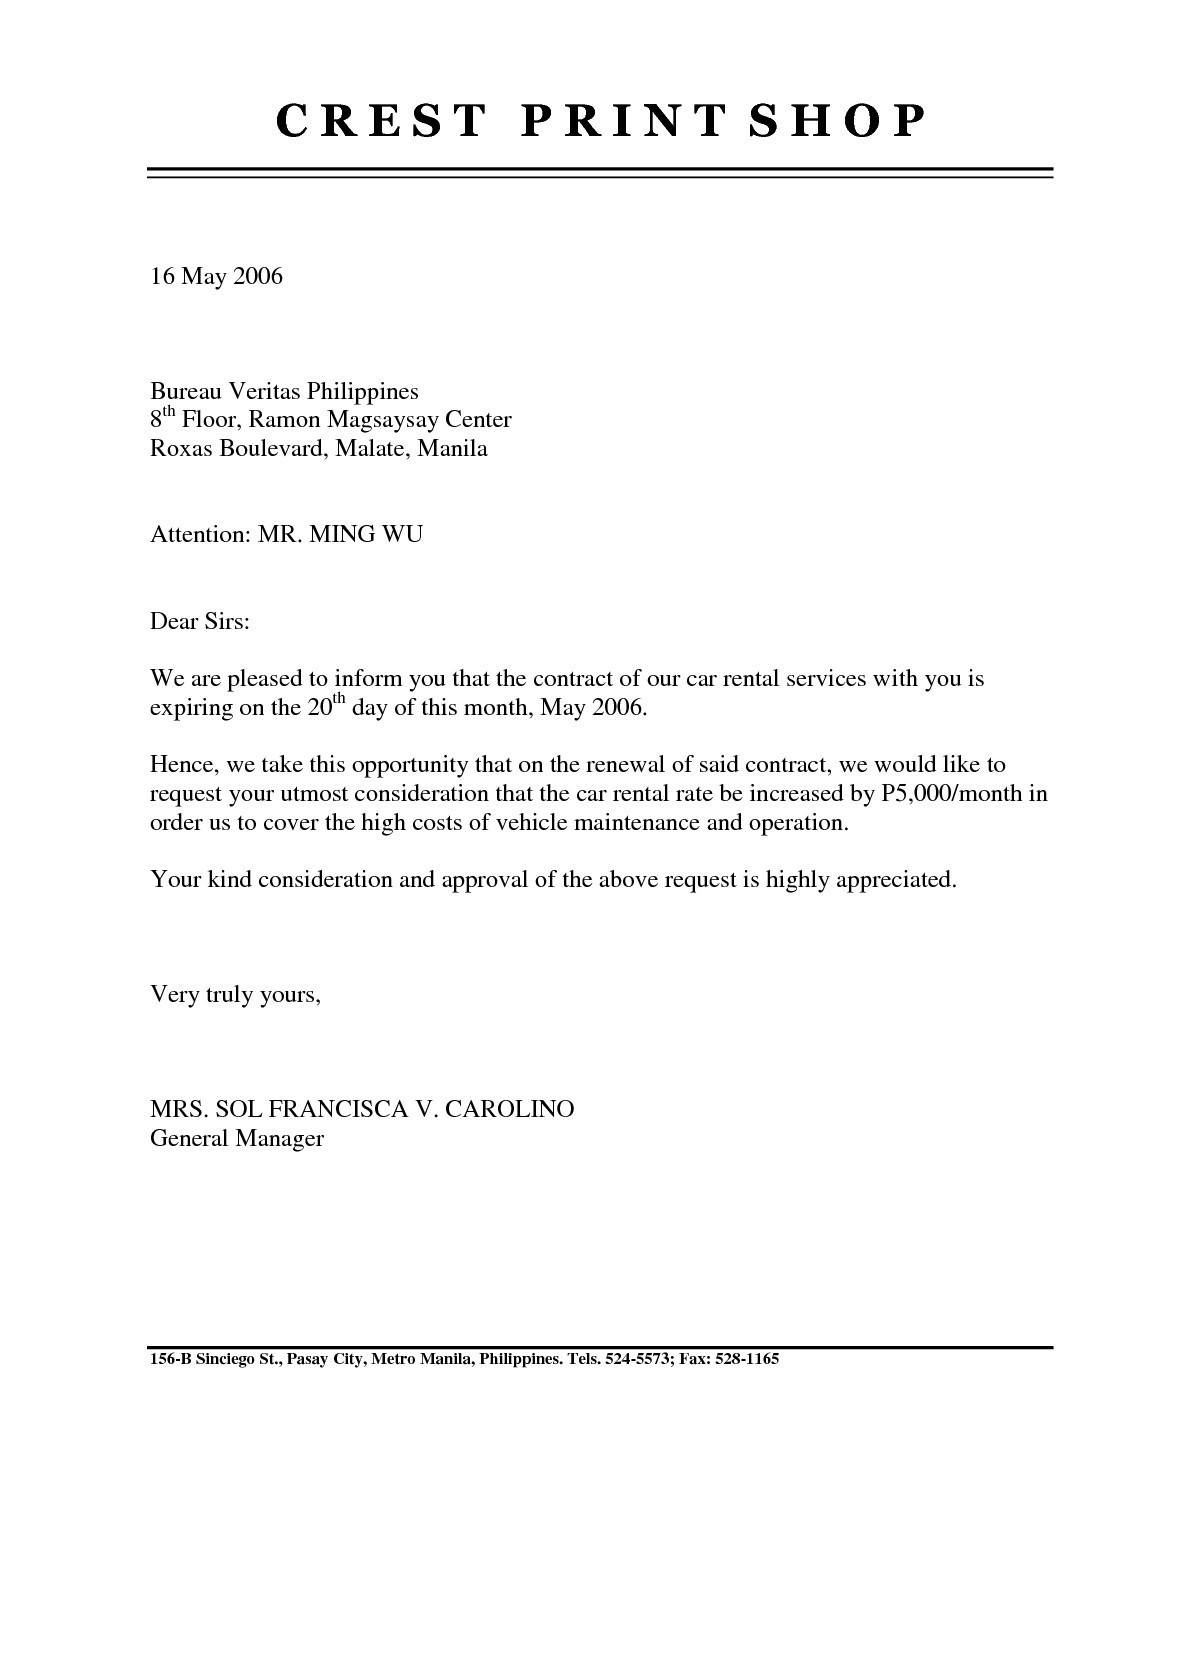 rental agreement letter template example-Rental Agreement Vs Lease Fresh Tenancy Agreement Renewal Template Awesome Od Renewal Letter Sample 11-m